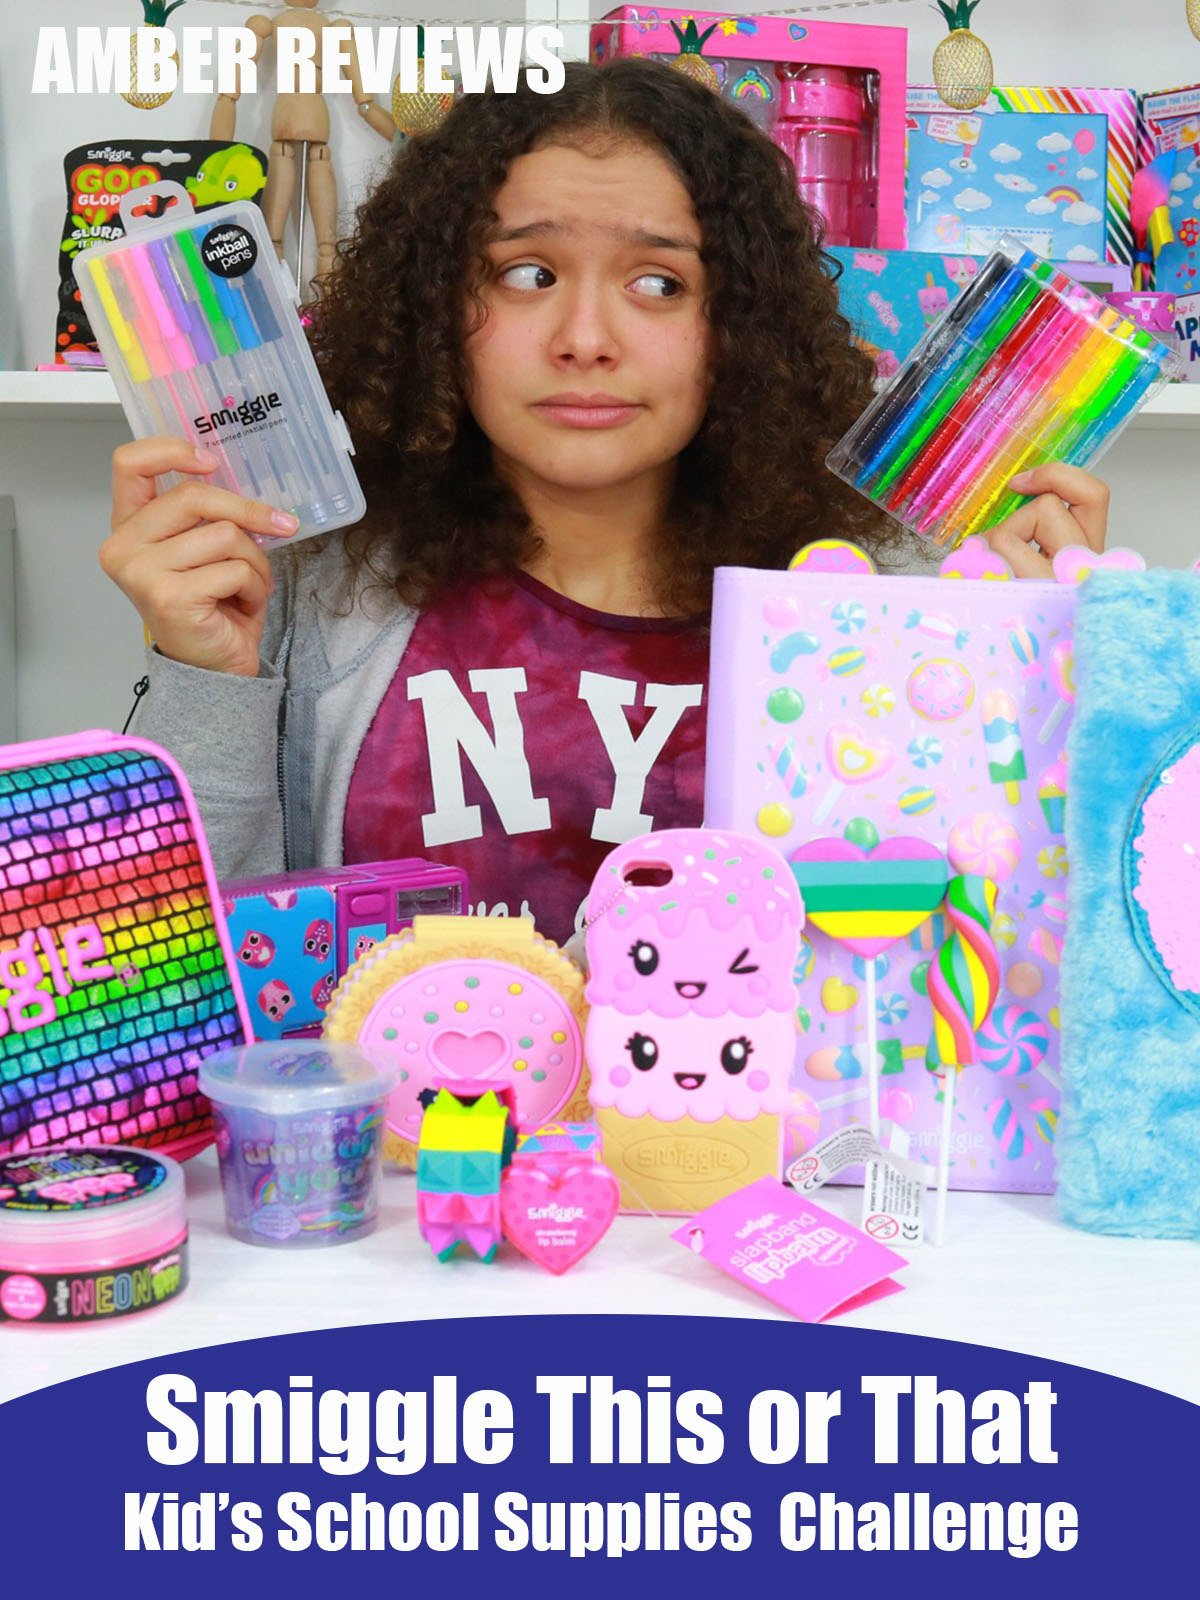 Amber Reviews Smiggle This or That School Supplies Challenge